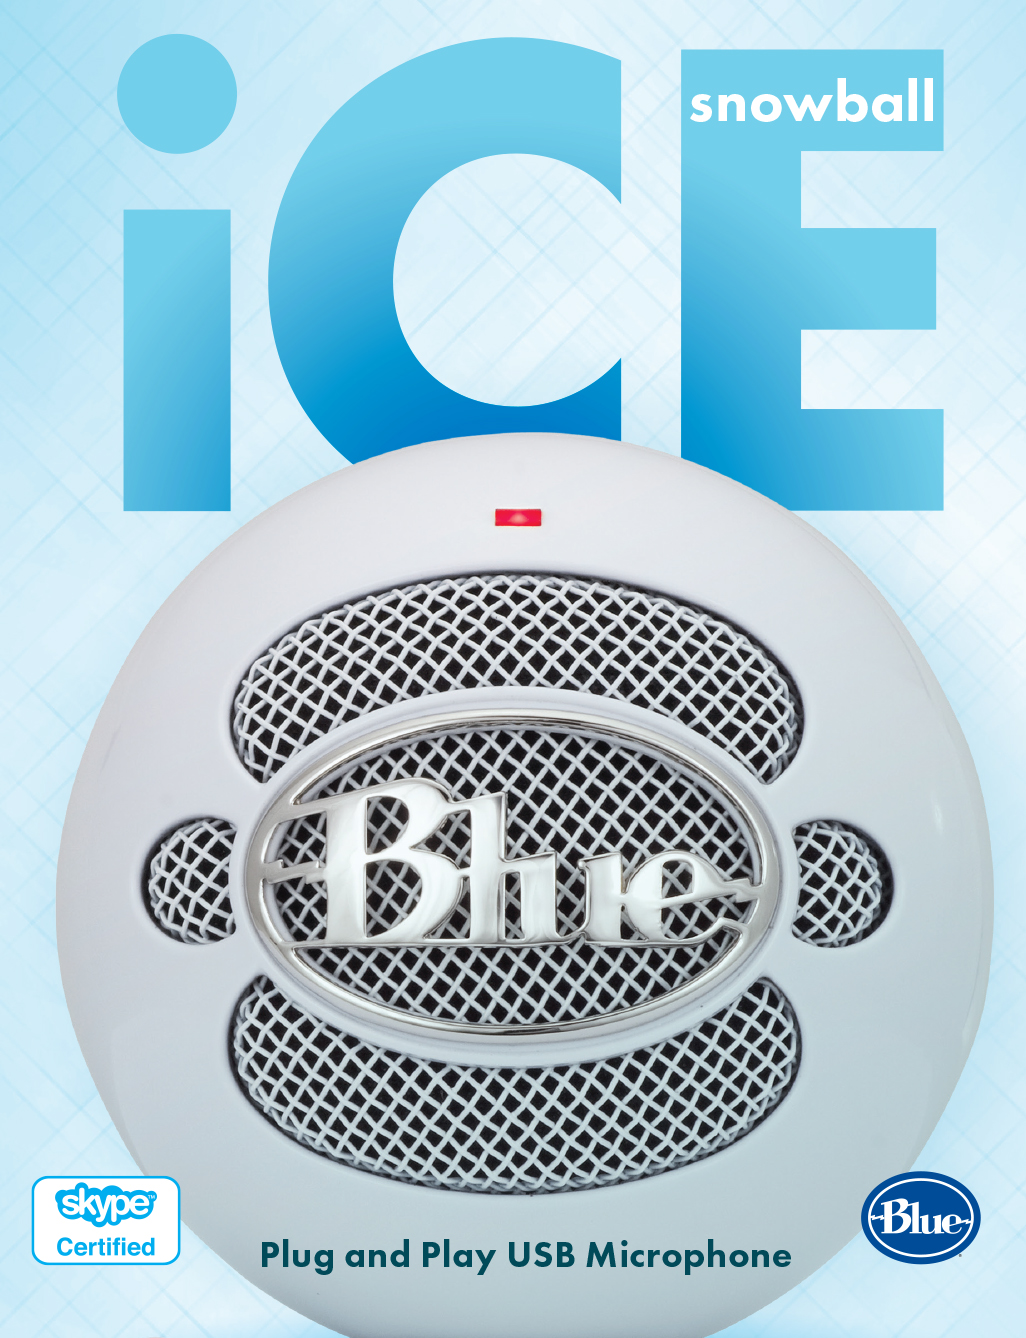 Blue Snowball iCE USB Microphone - White   Dell USA